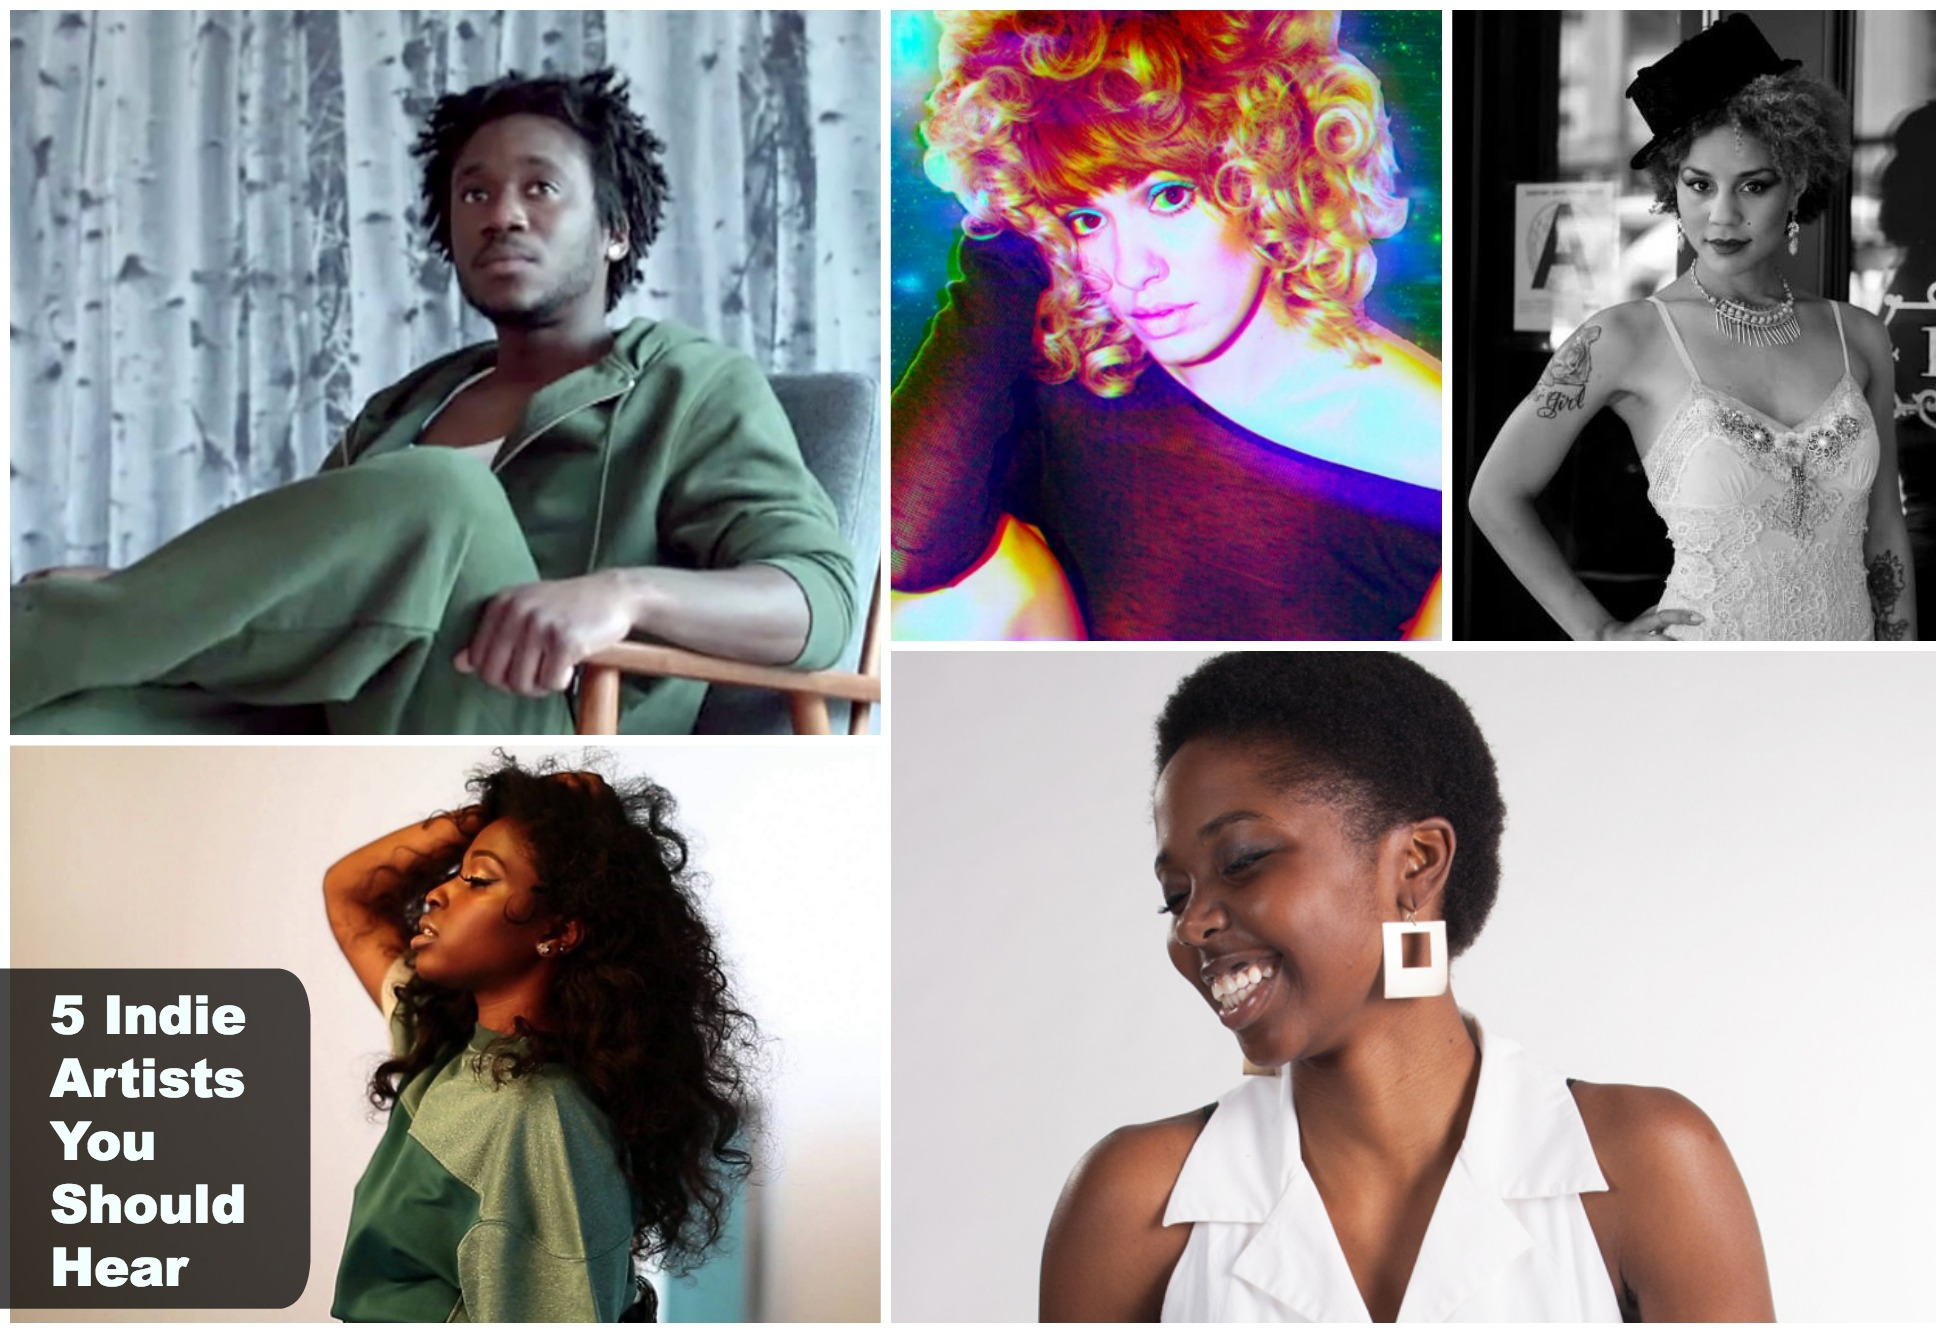 5 Indie Artists You Should Hear